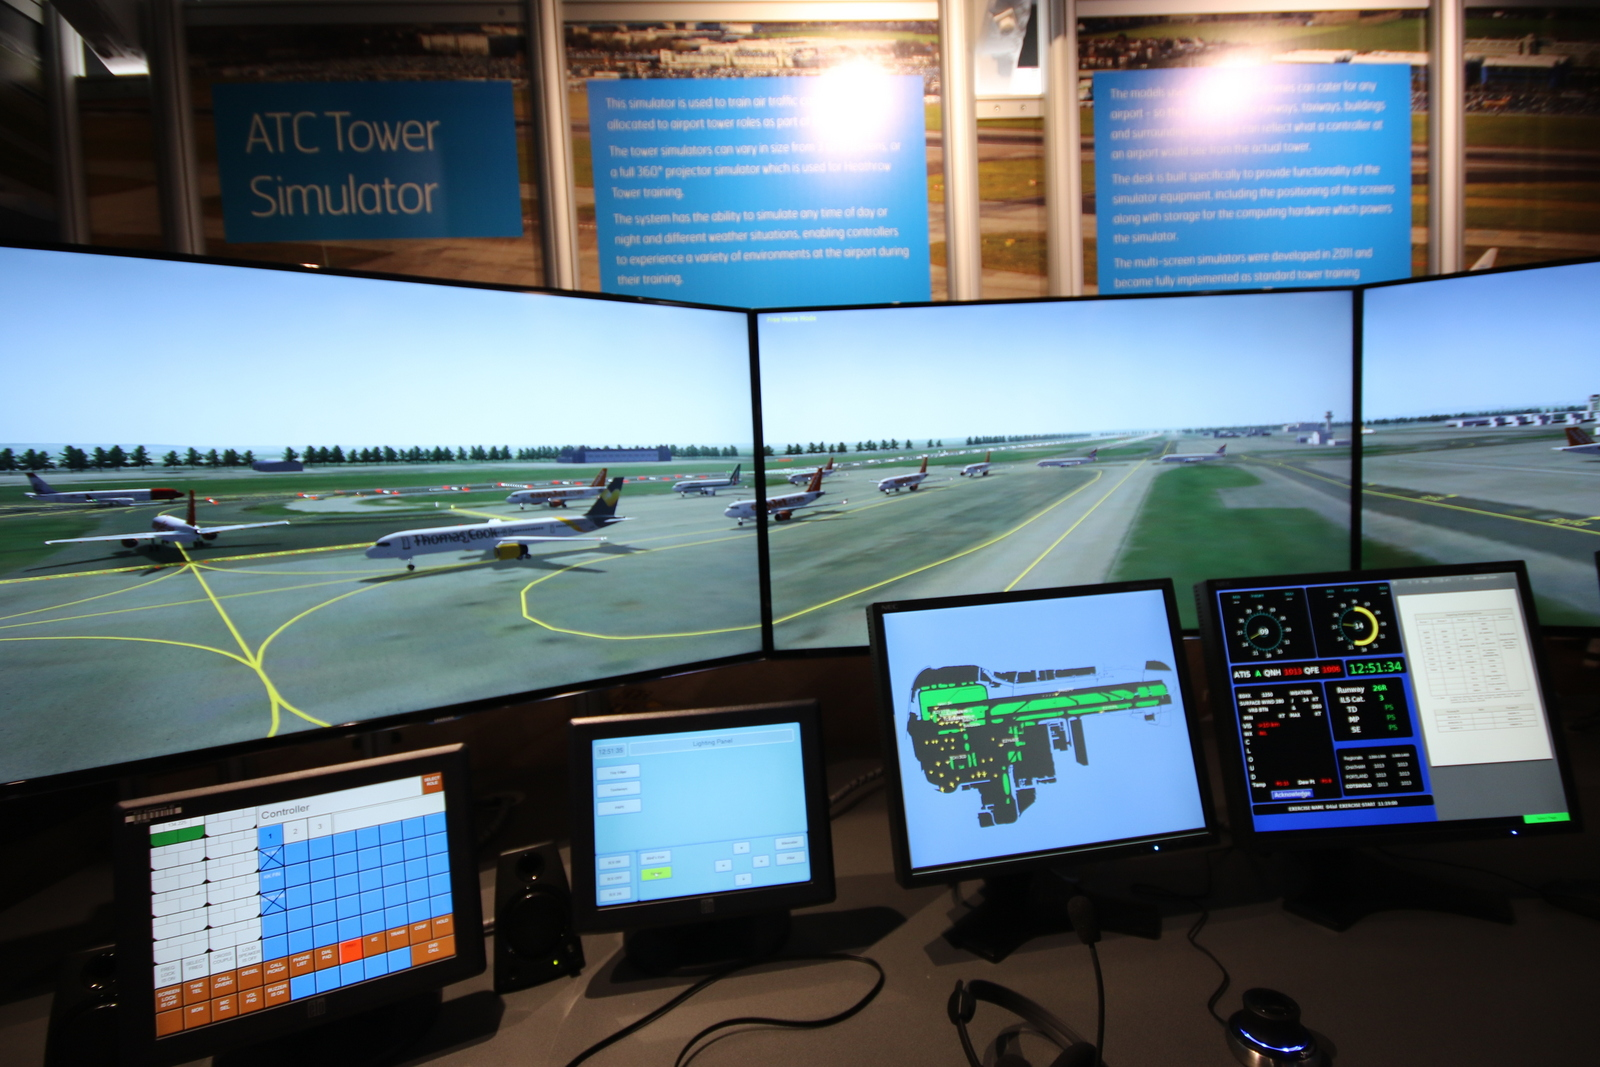 Air Traffic Control Simulator Showing Planes Lining Up For